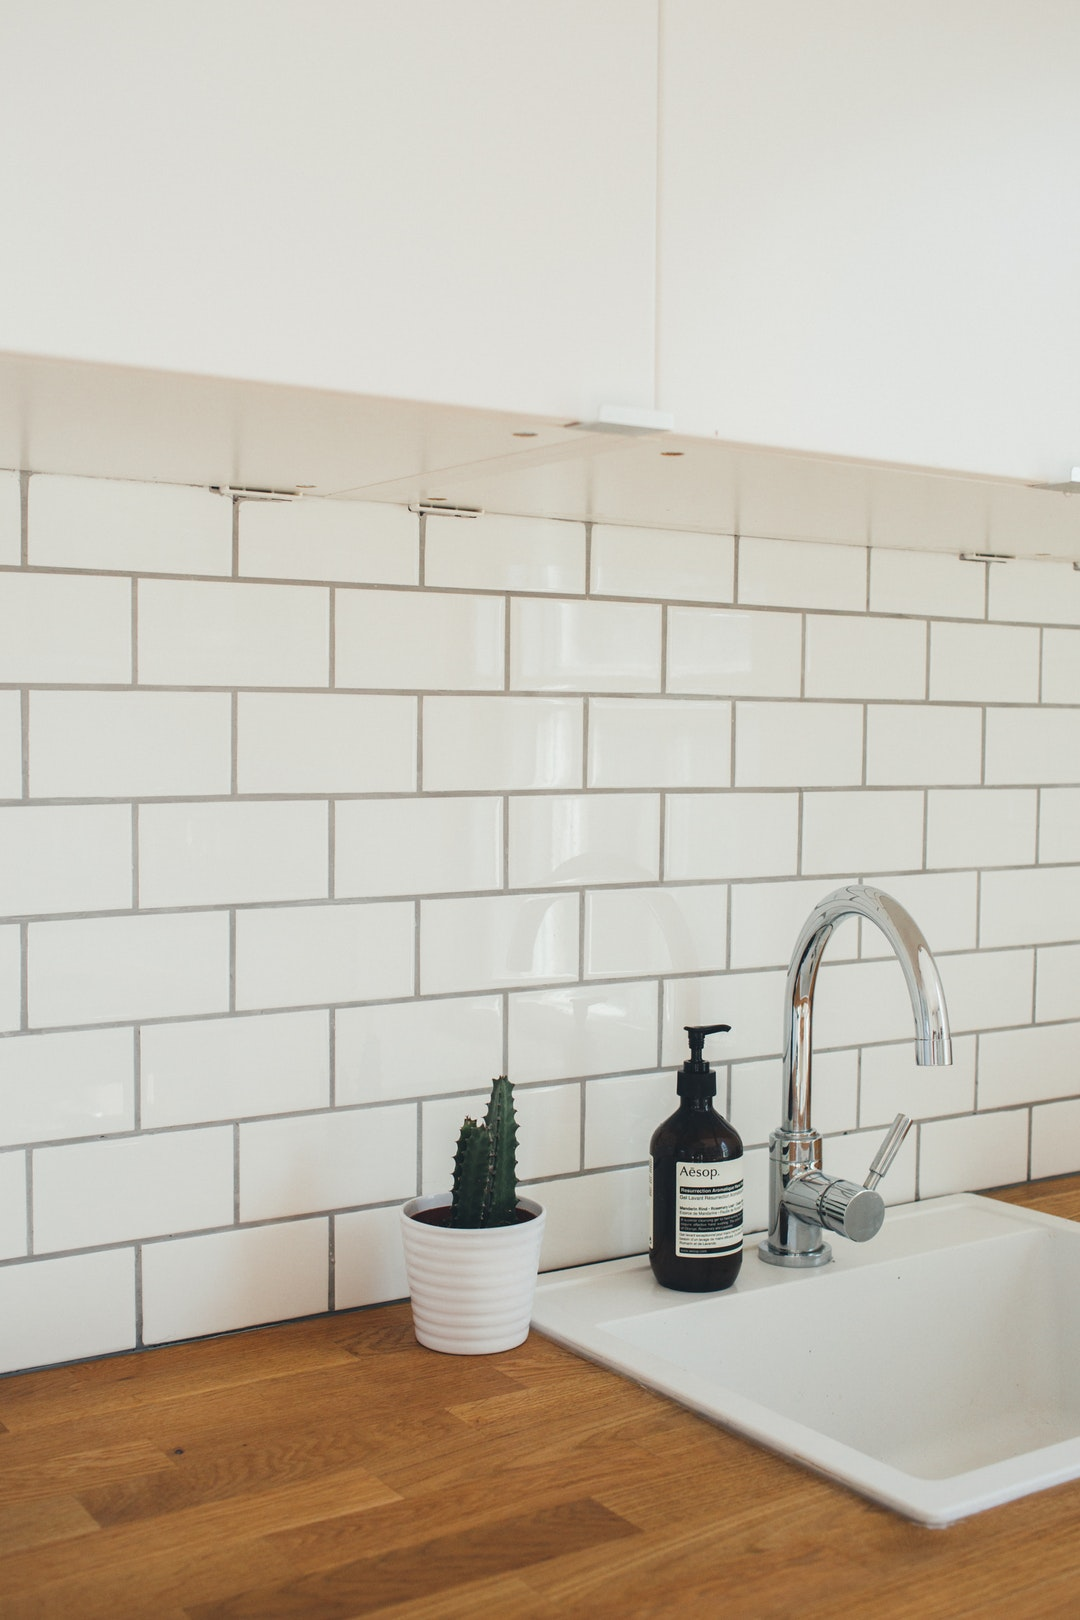 - 10 Kitchen Backsplash Tile Trends For 2019 - BELK Tile